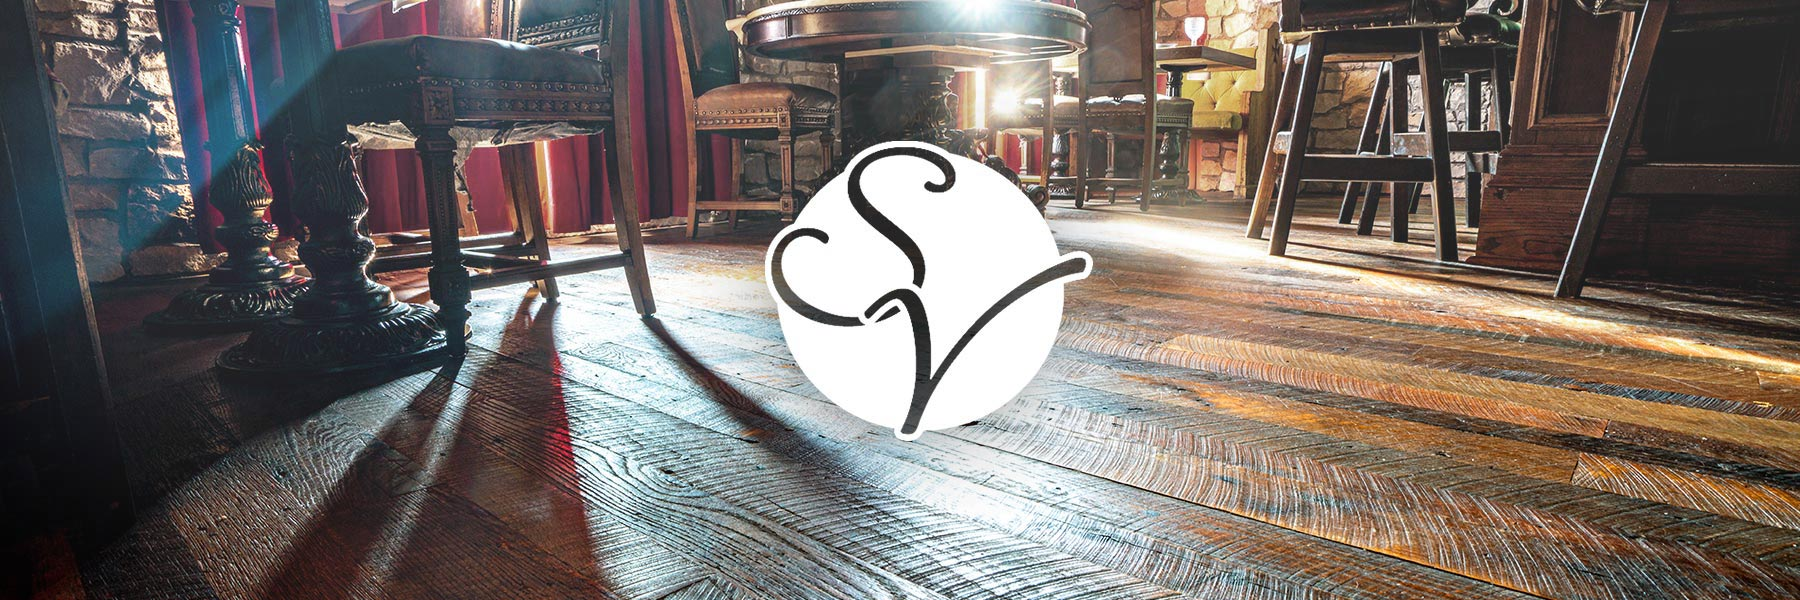 southern-vintage-logo-over-custom-reclaimed-hardwood-floor-in-resturaunt-2